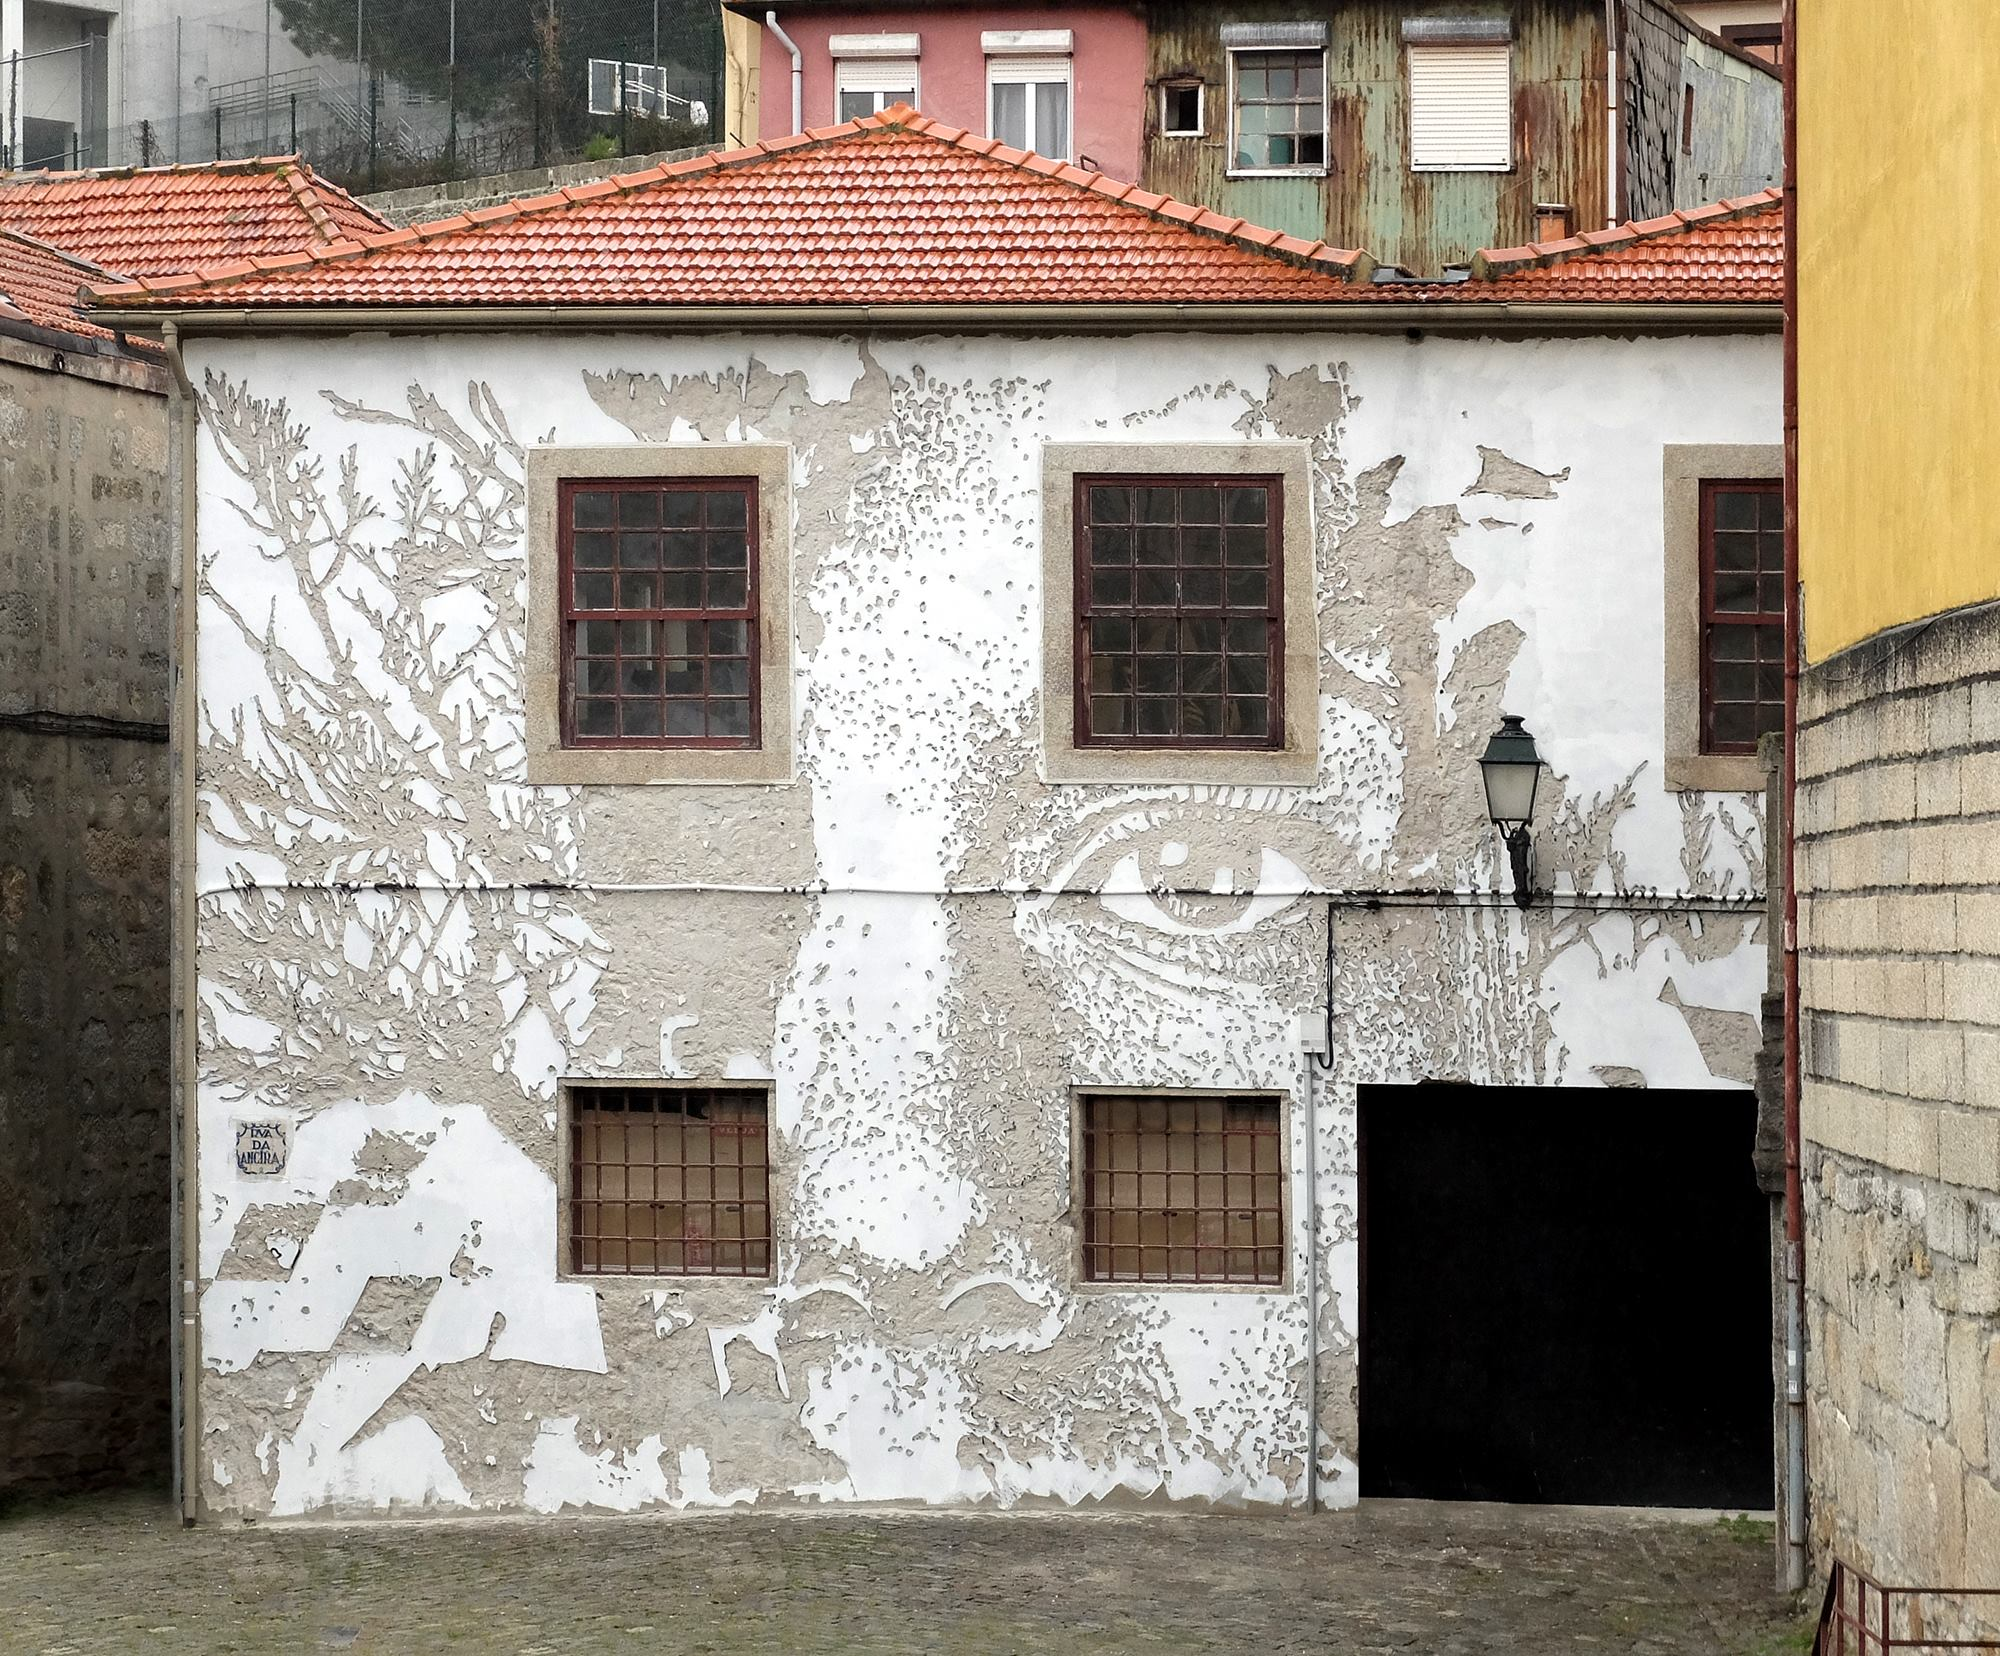 Street Art by Vhils in Porto, Portugal 1